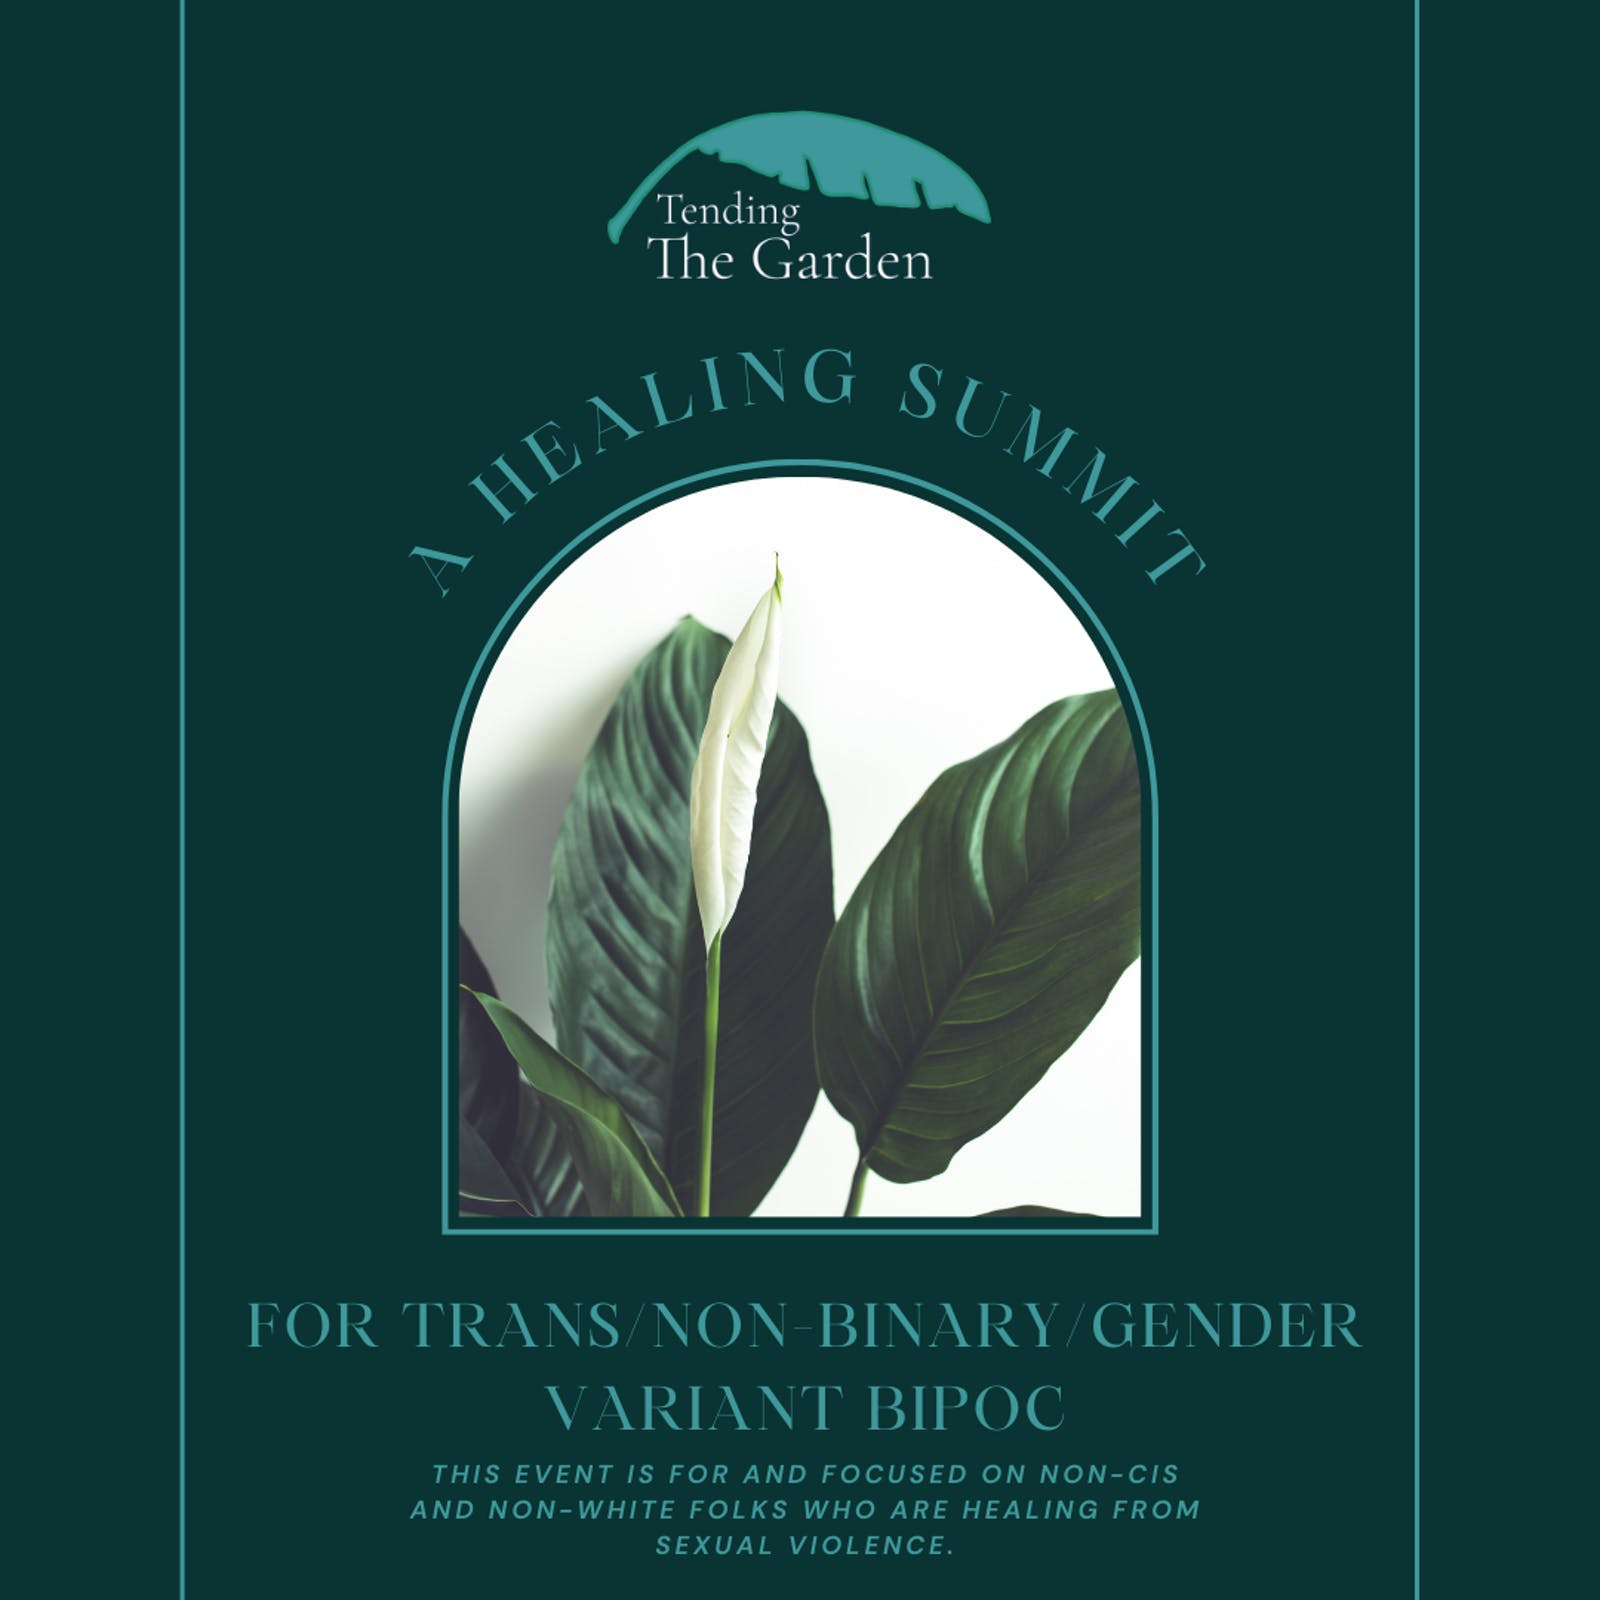 Healing Summit for Trans/Non-Binary/Gender Variant BIPOC